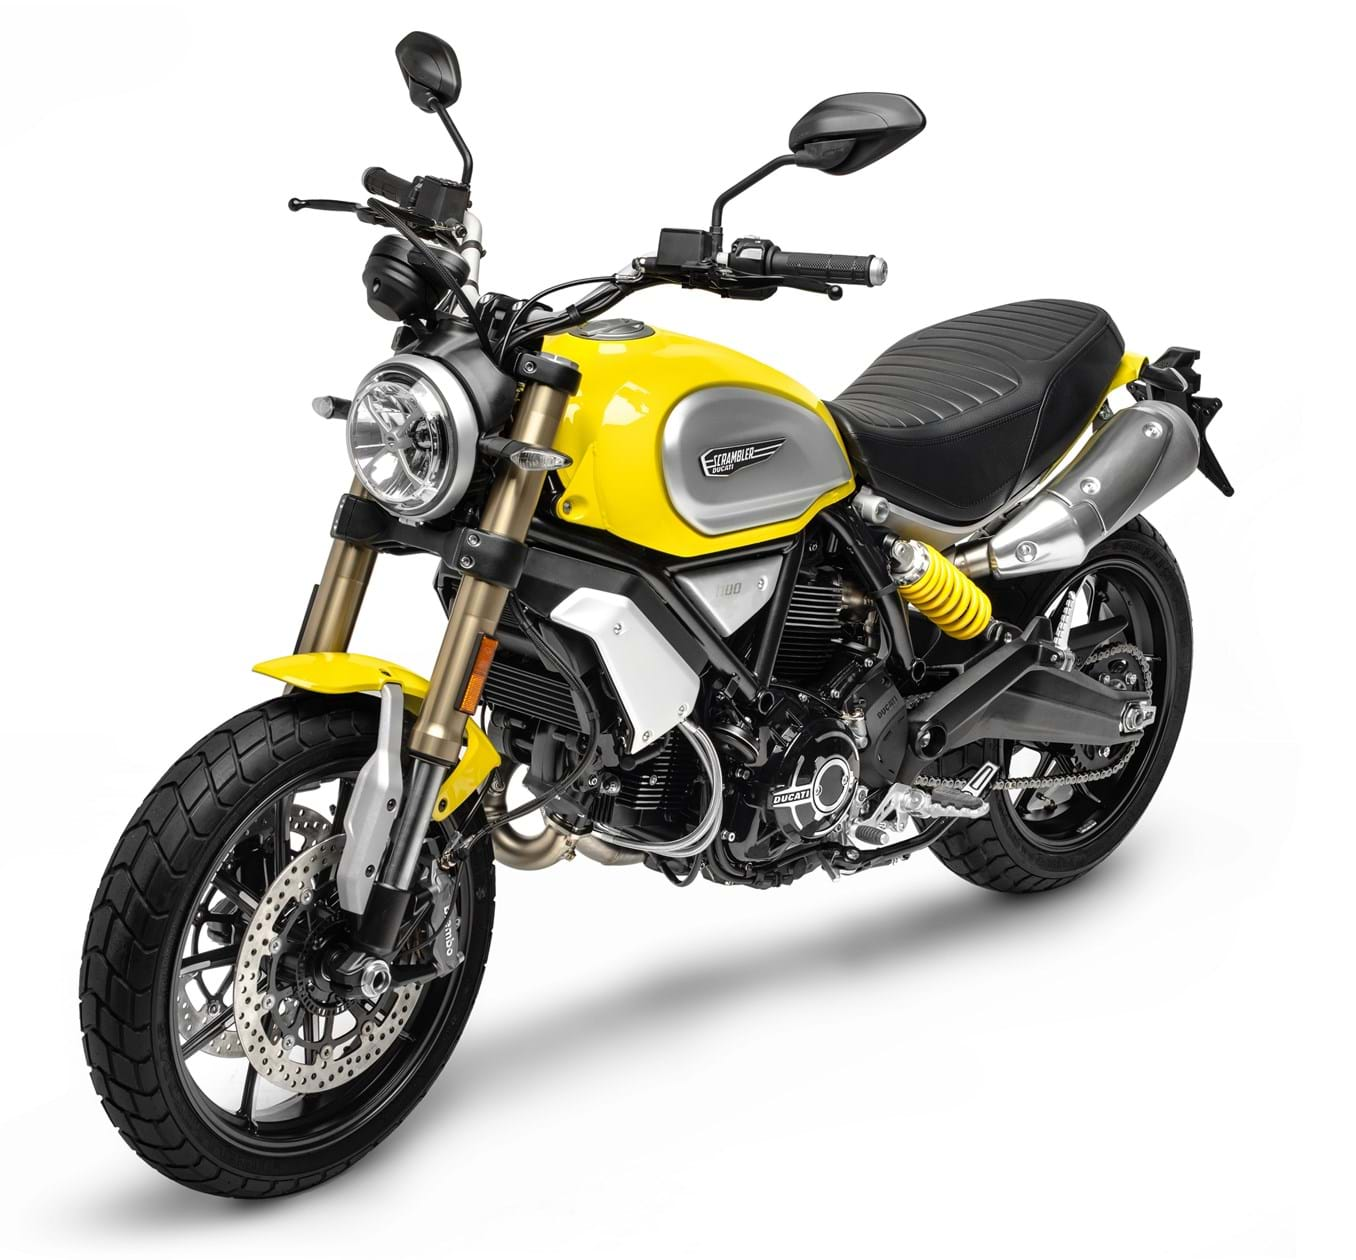 For Sale Ducati Scrambler 1100 The Bike Market